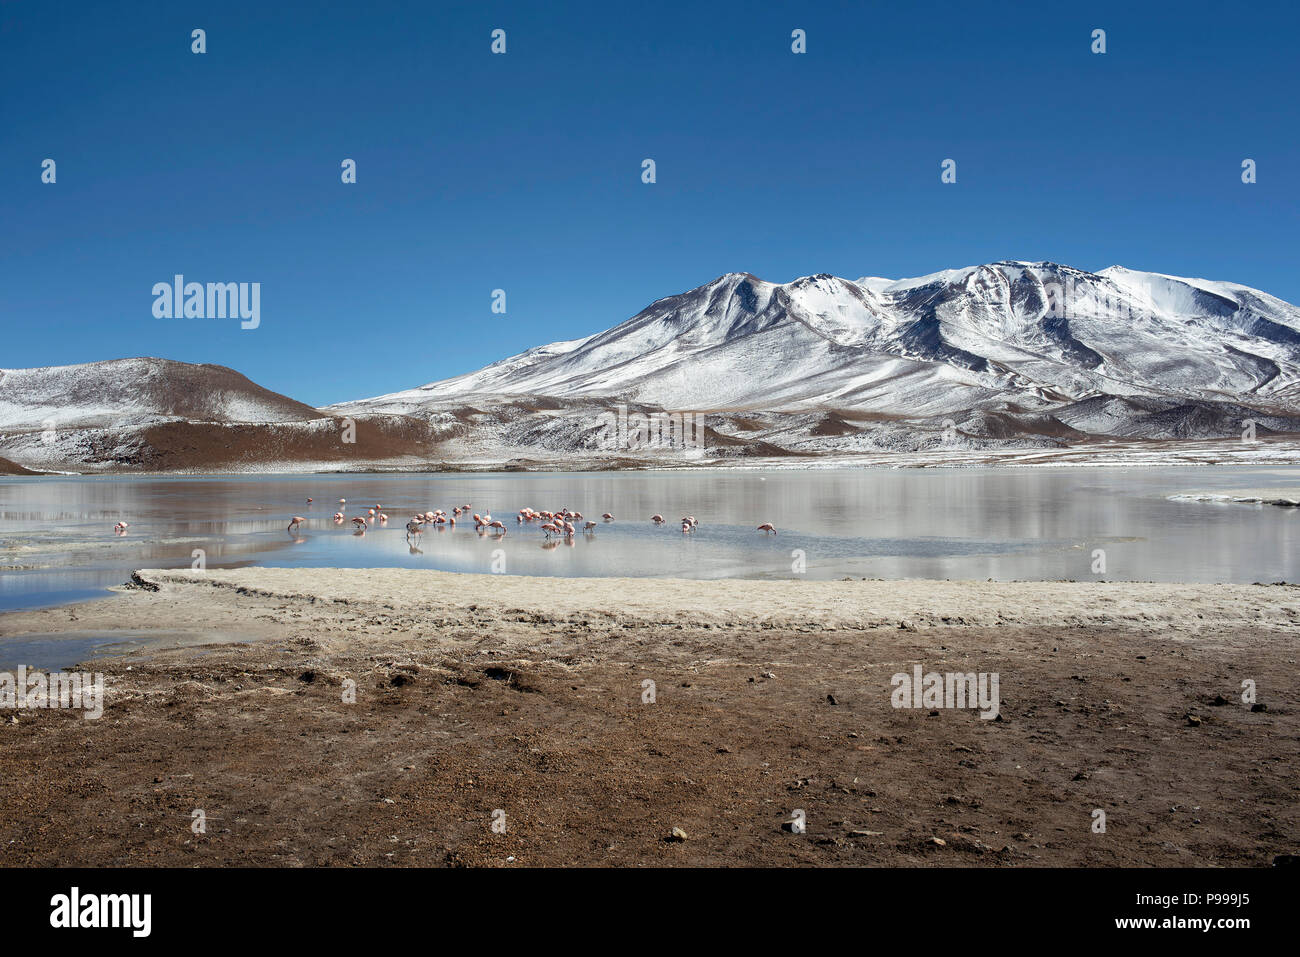 The wintery landscape of Laguna Cañapa (Cañapa salt lake) in the Potosí Department, Bolivia. - Stock Image